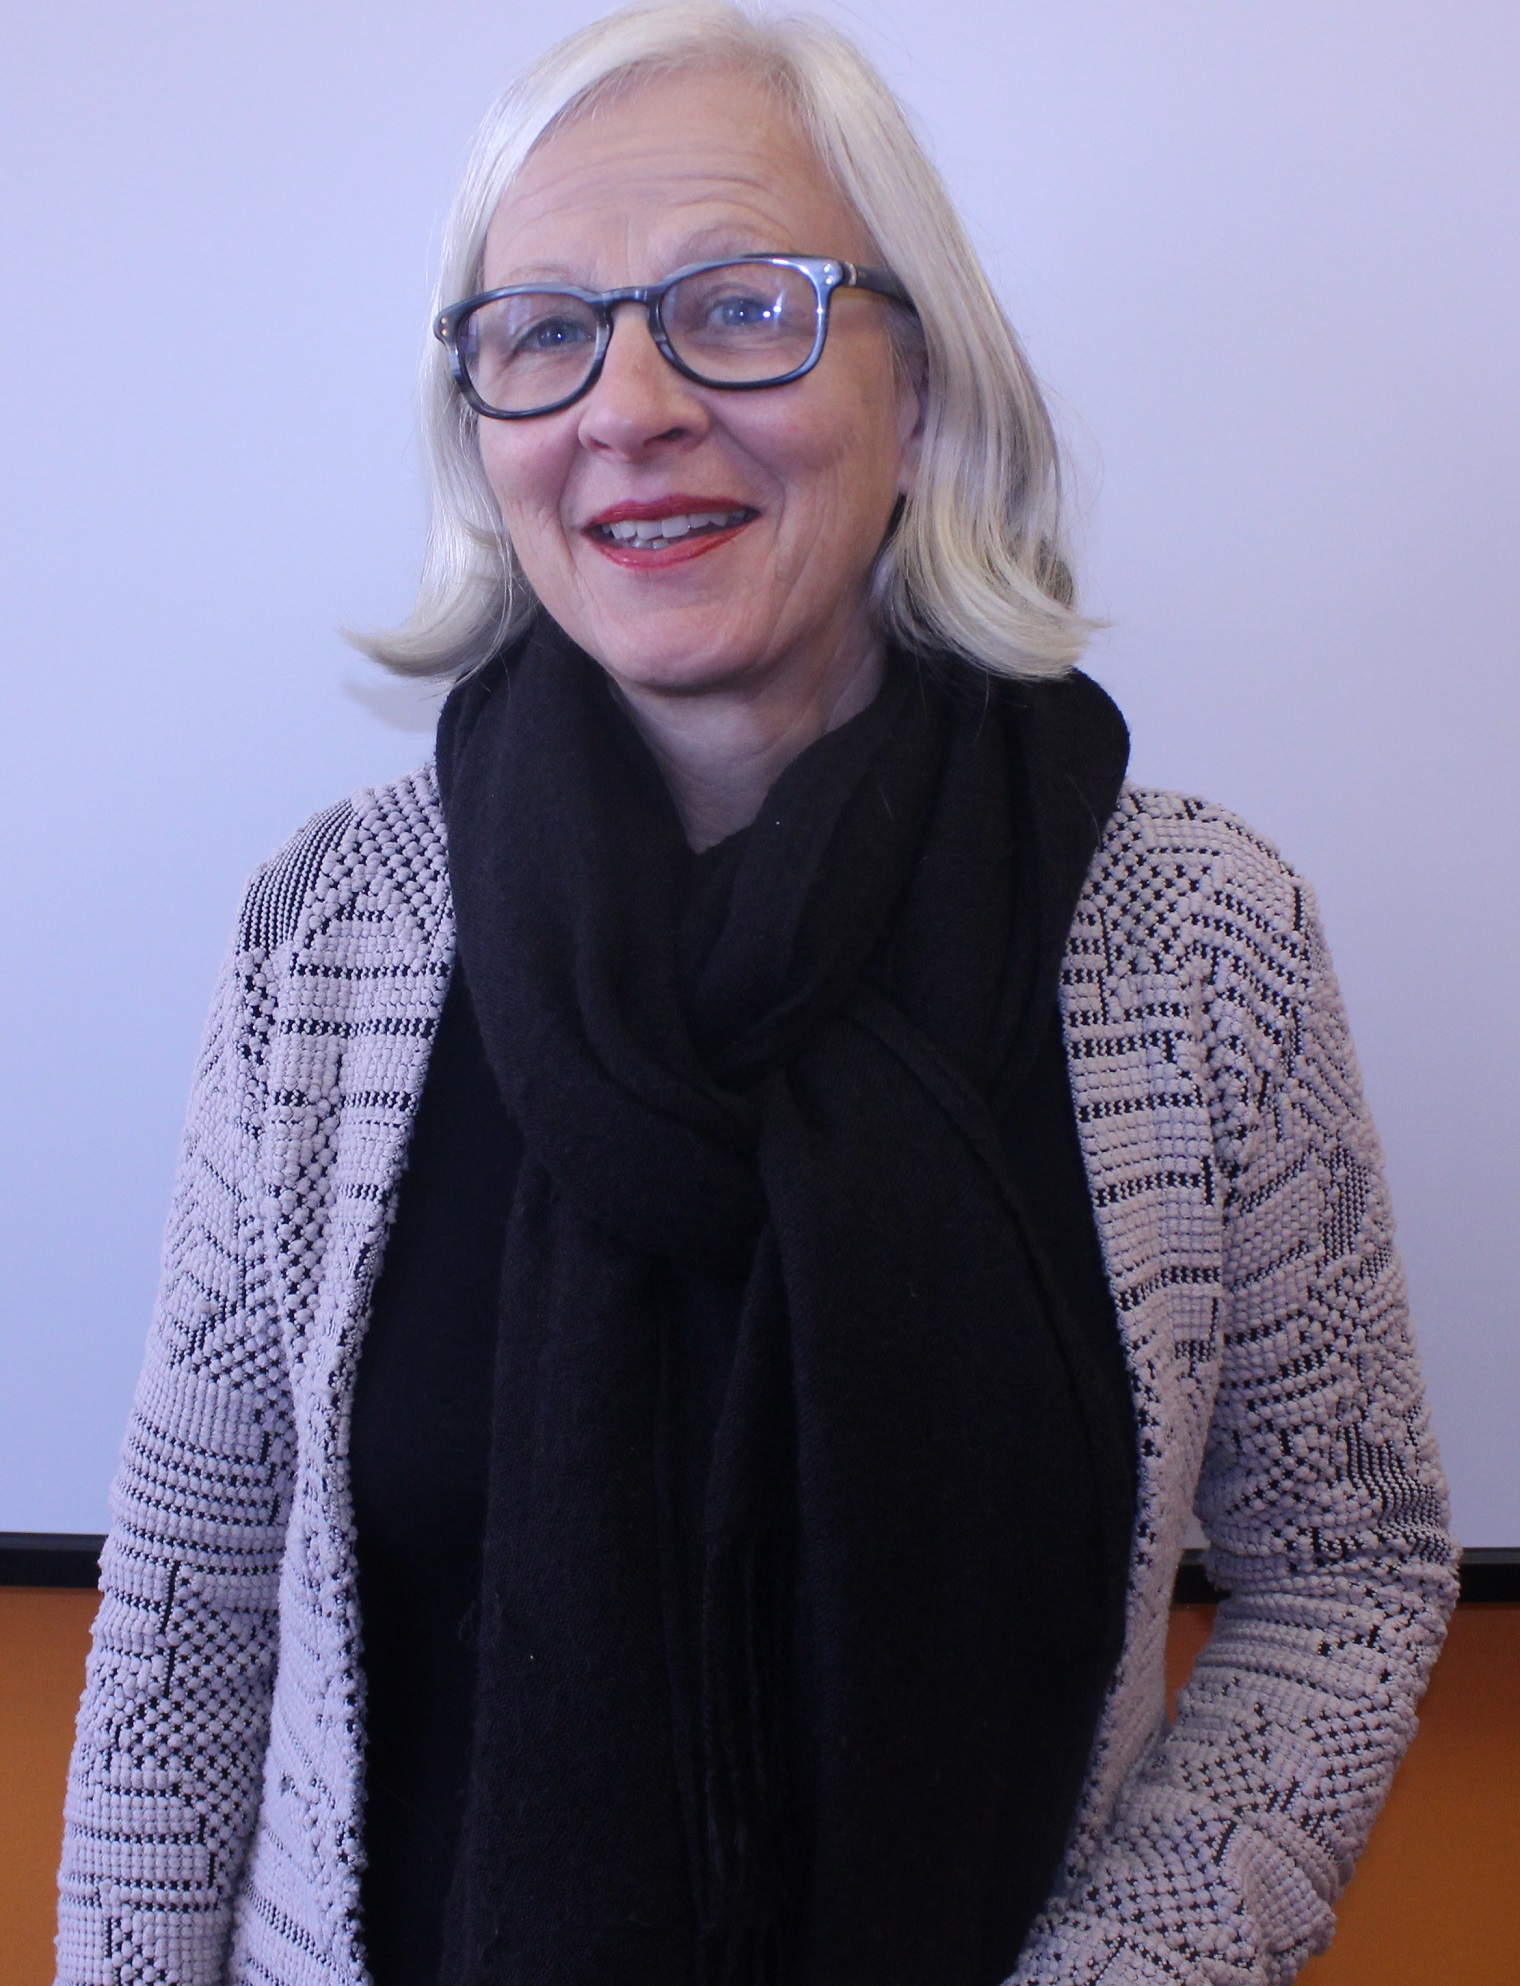 Elisabeth Korrodi from Switzerland  is learning English in Canada with EC Montreal